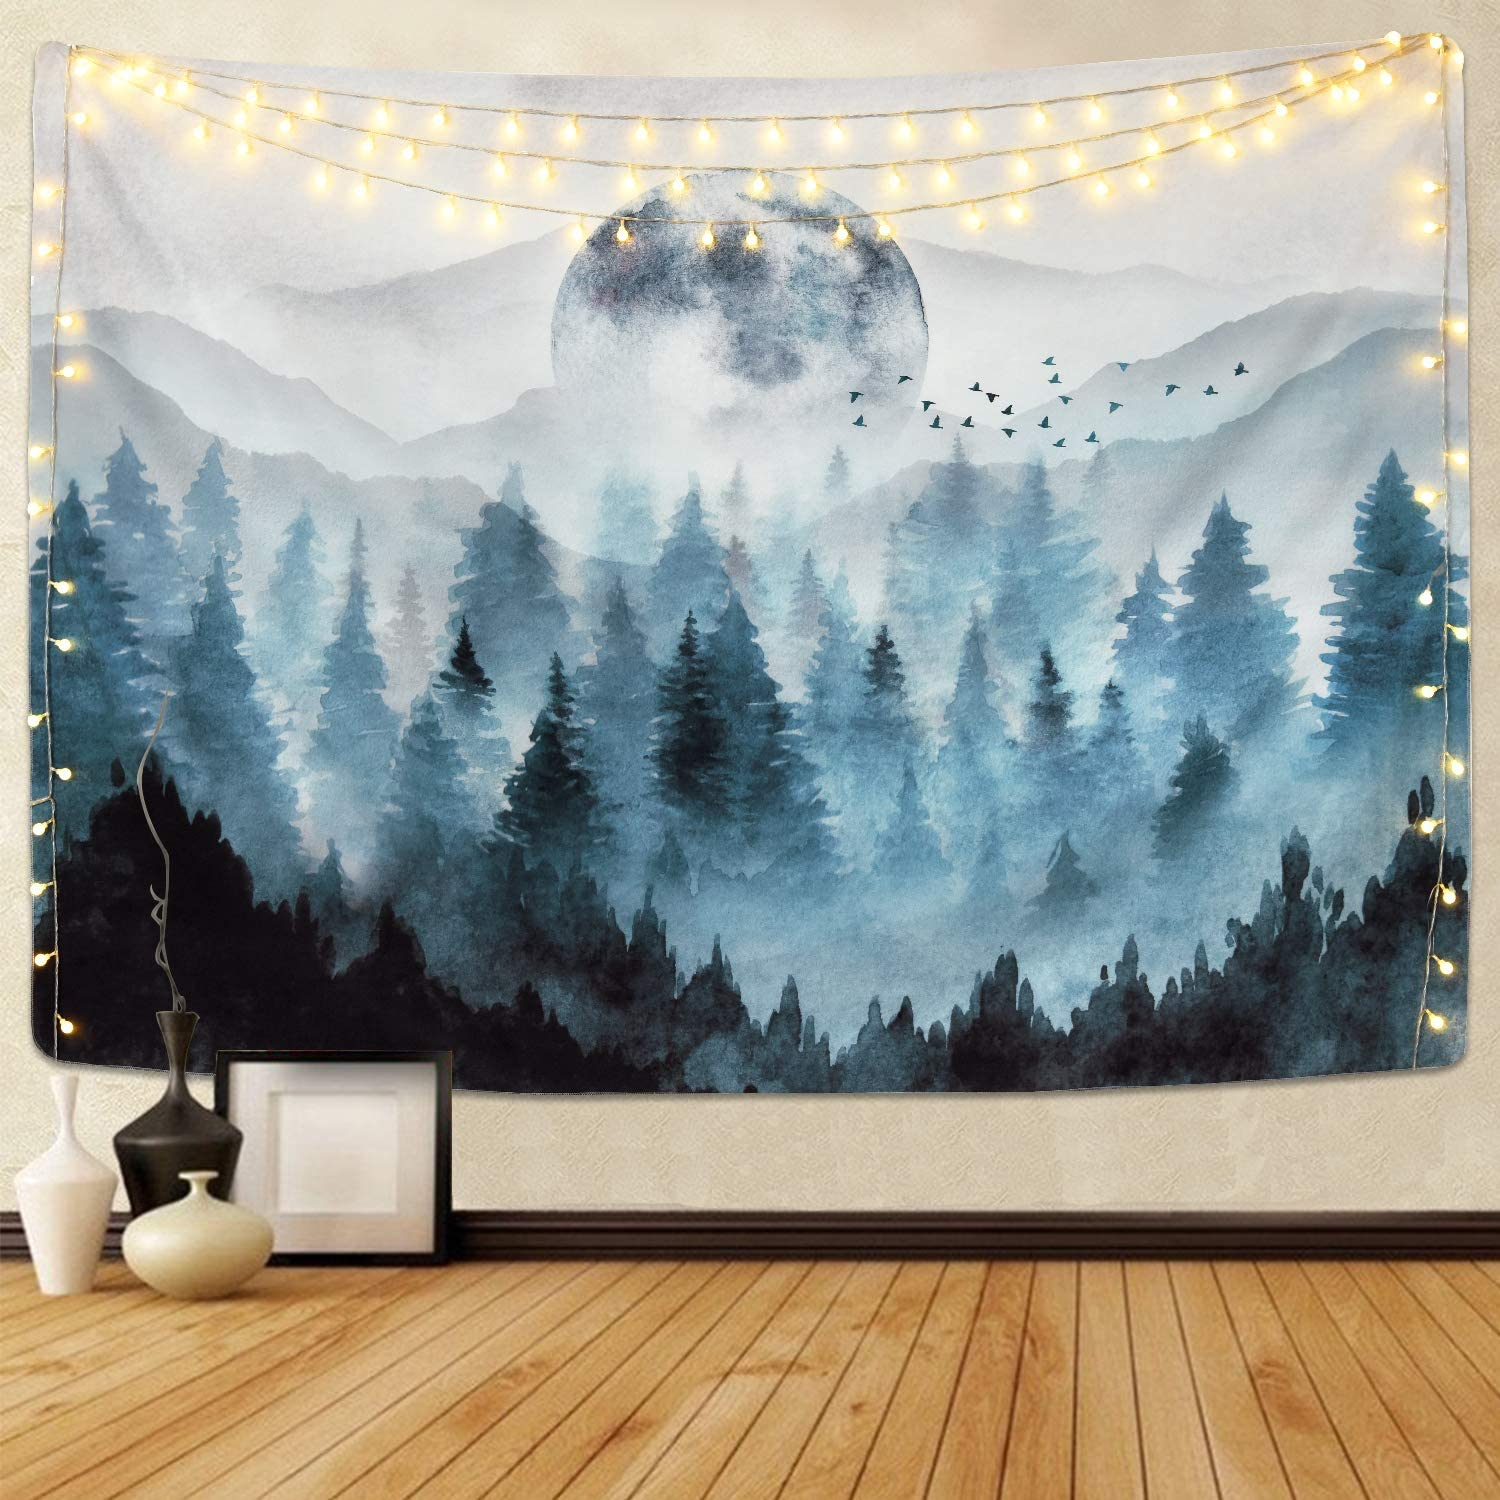 Likiyol Foggy Forest Tapestry Misty Mountain Tapestries Magical Nature Tapestry Fog Tree Tapestry Woodland Landscape Tapestry (Grey, 59.1 x 82.7 inches)